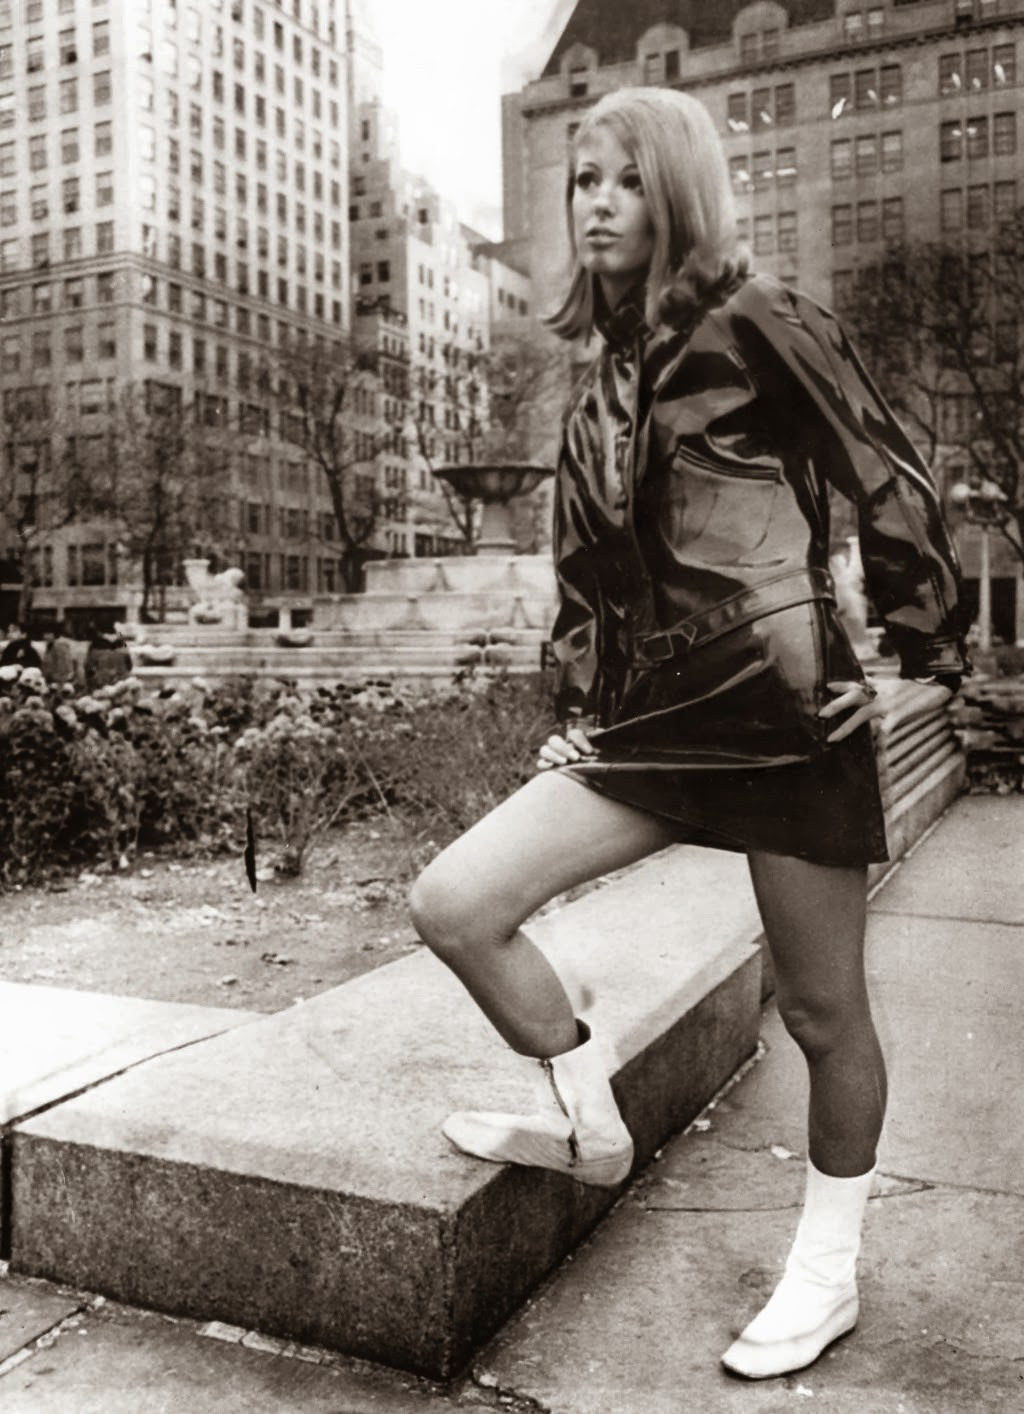 Women In Mini Skirts In The 1960s Vintage Everyday